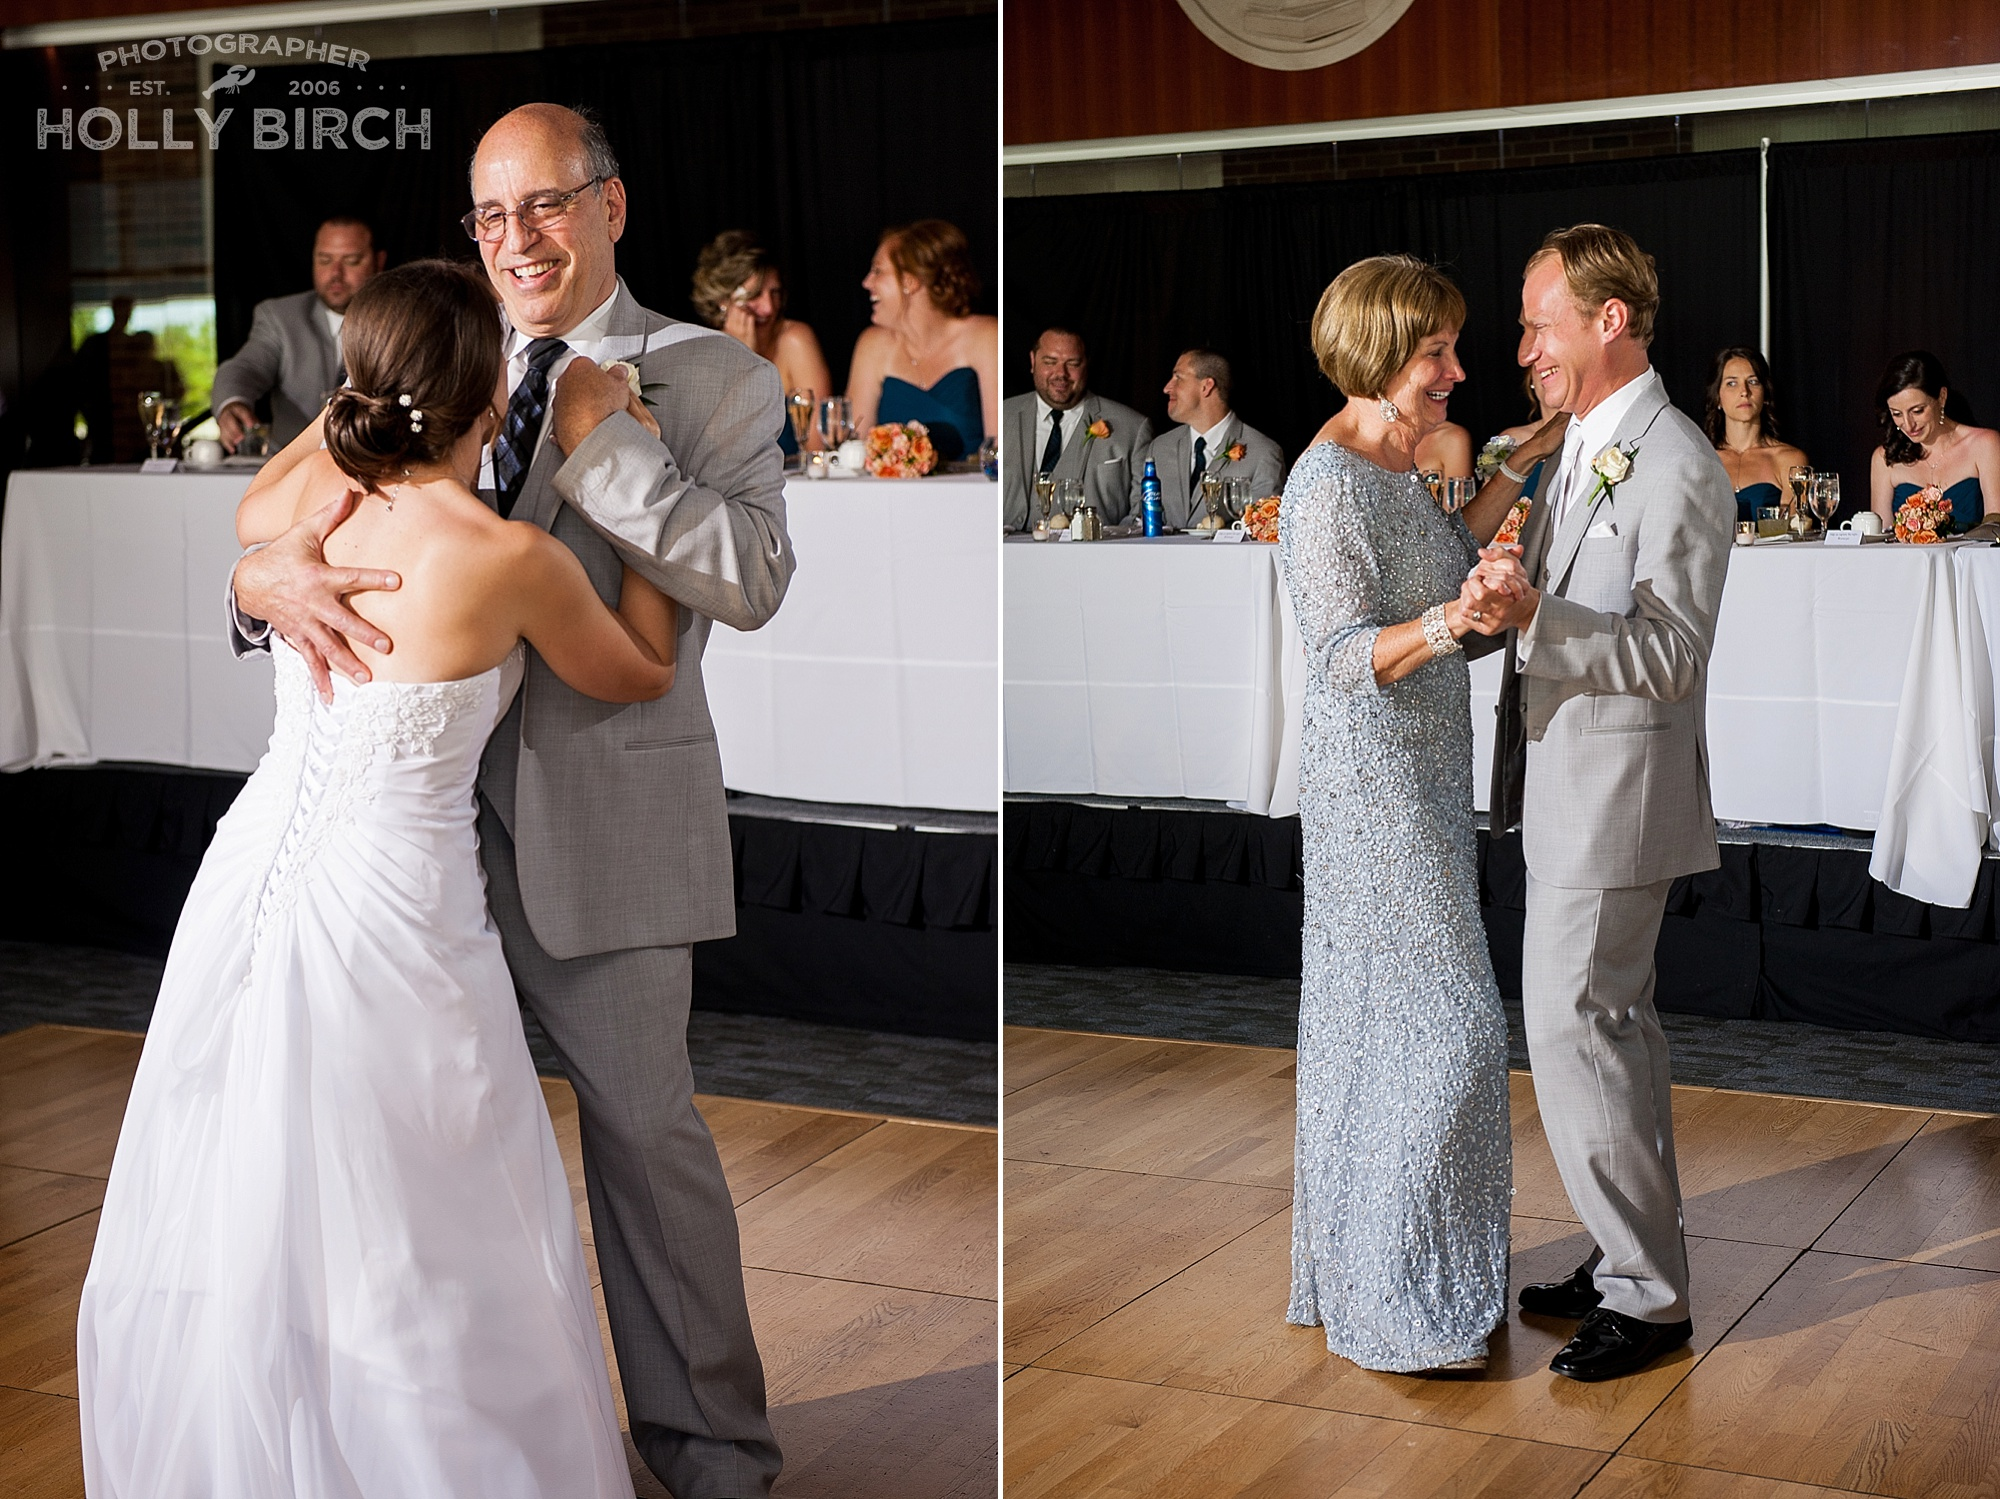 father-daughter and mother-son dance